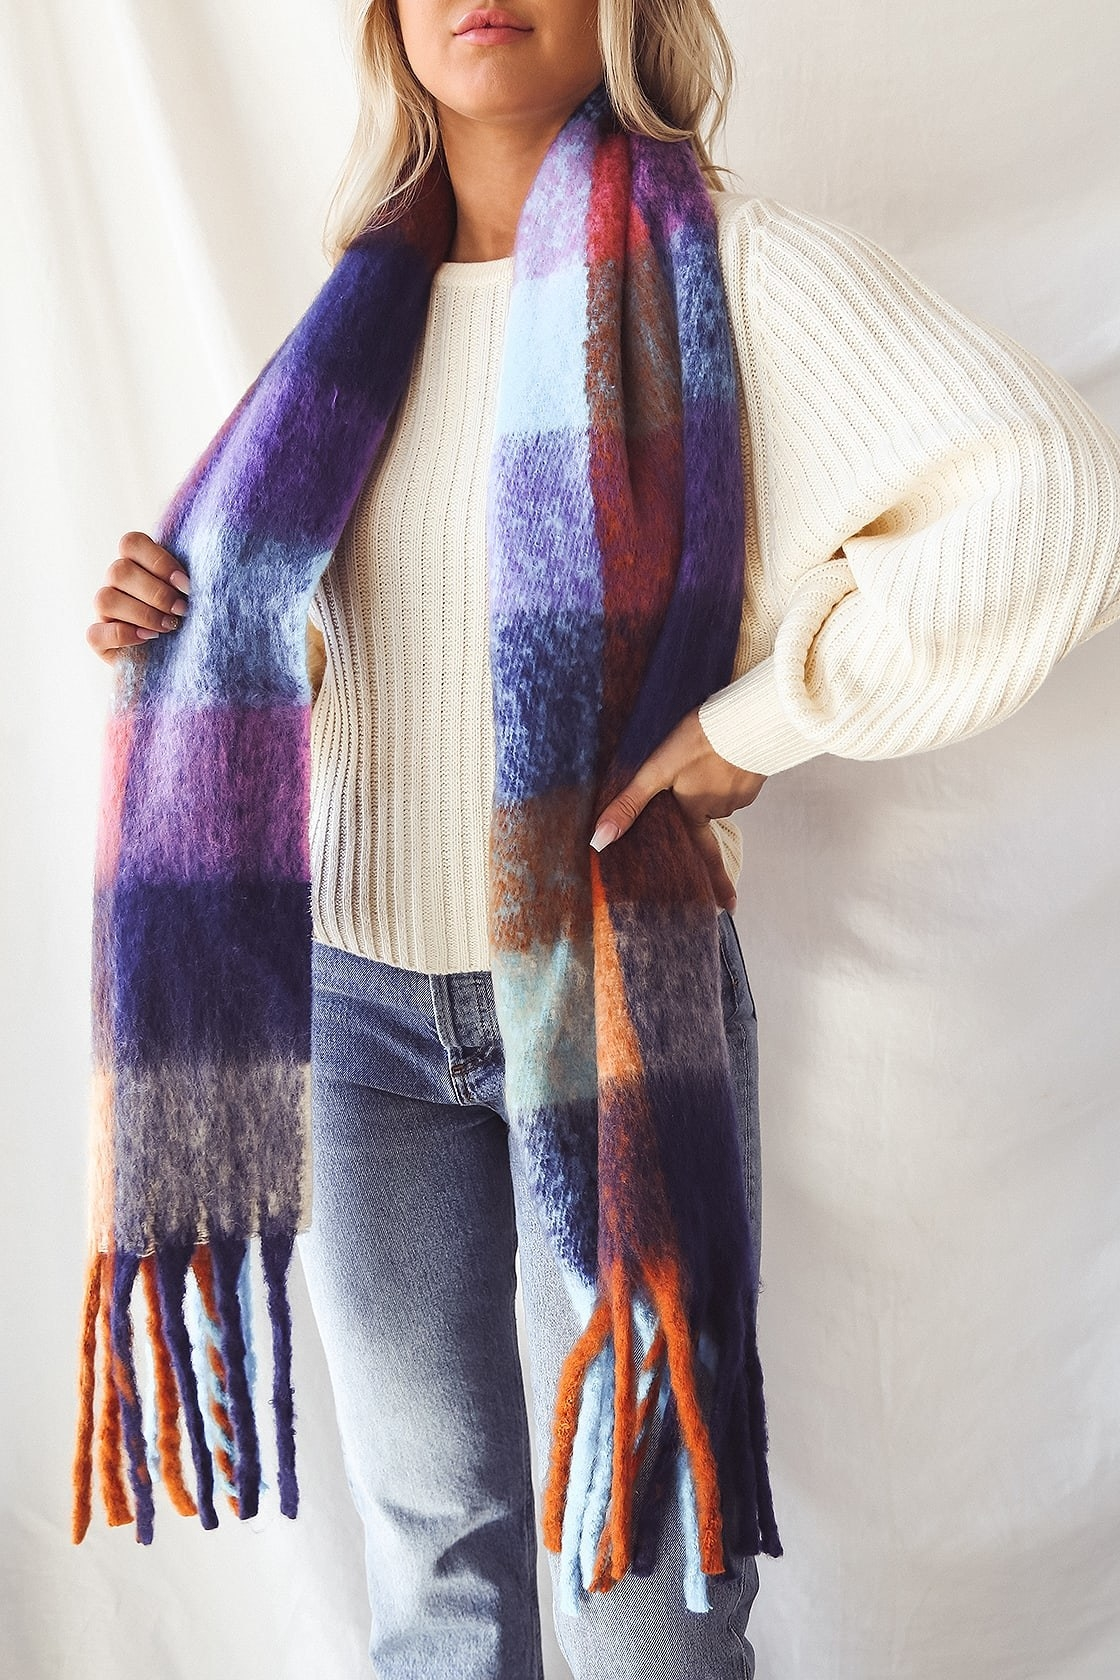 model wearing the blue, orange, and purple scarf